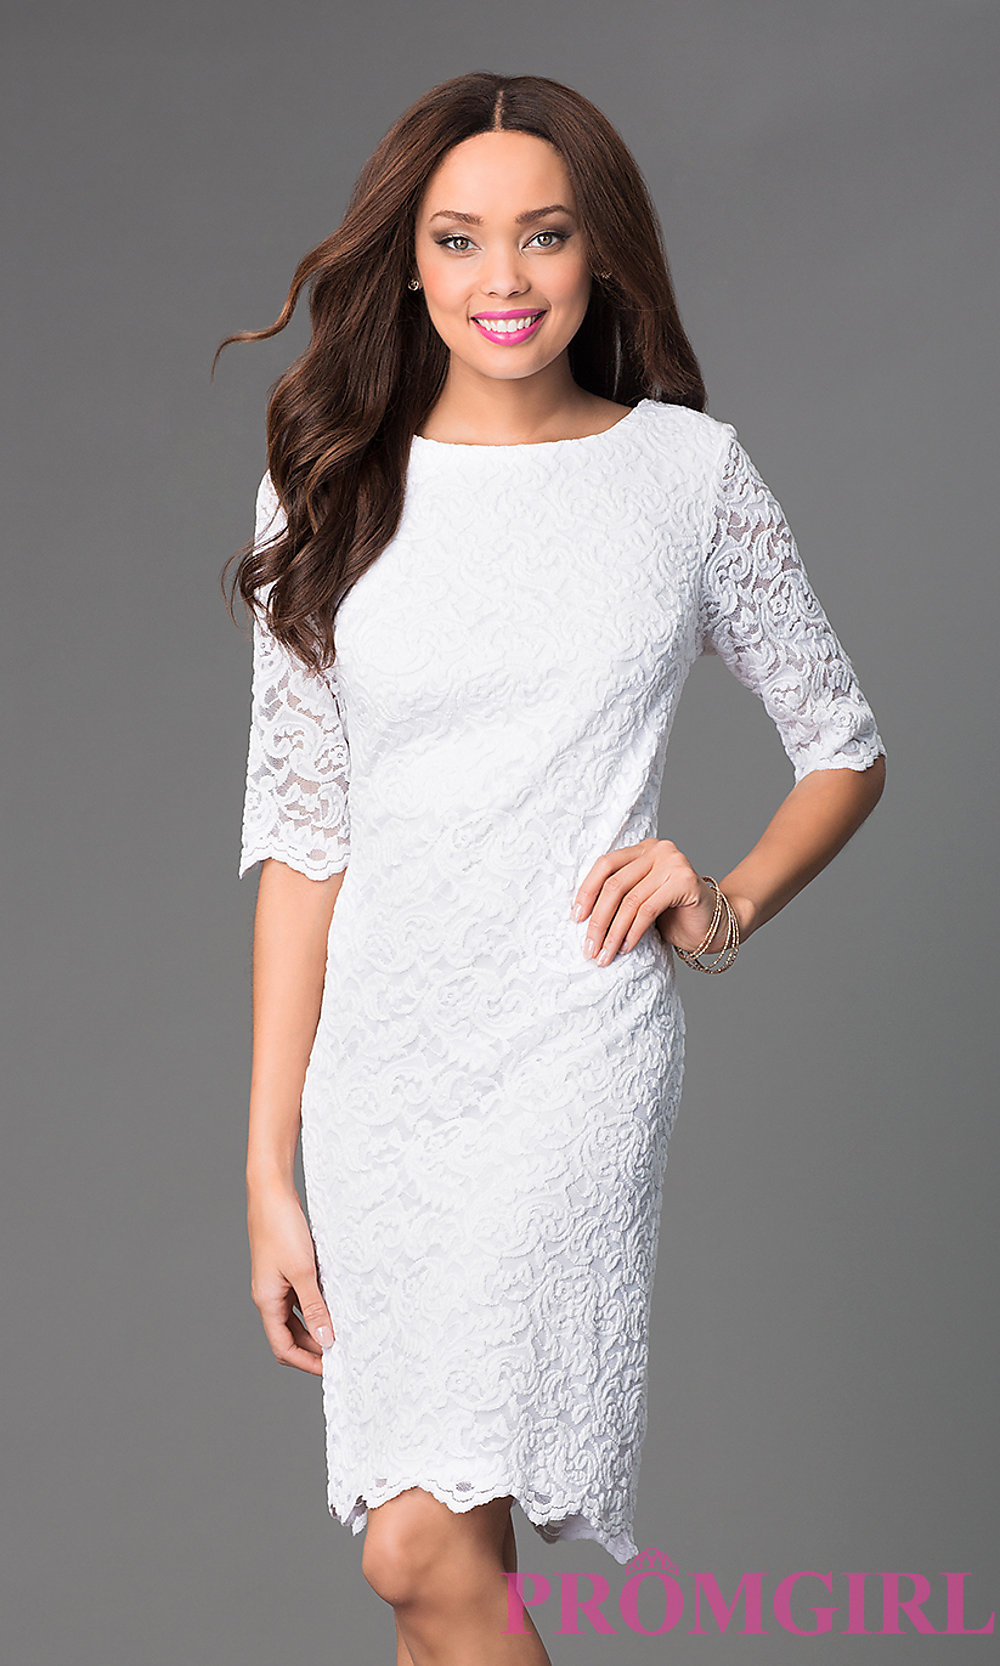 SF Knee-Length Lace Dress with Sleeves - PromGirl